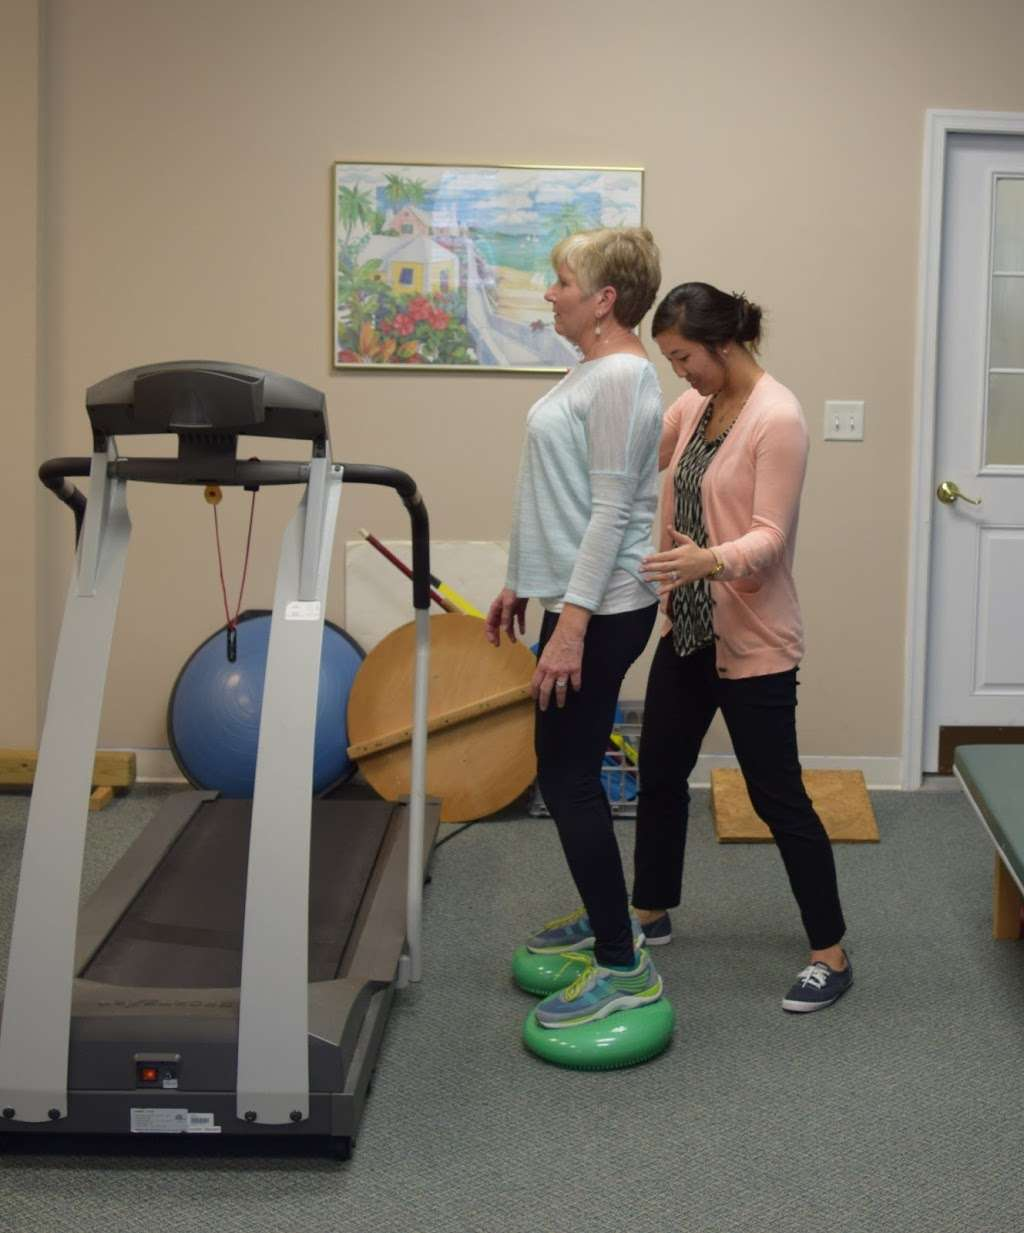 Aquacare Physical Therapy | Lewes, DE - physiotherapist  | Photo 9 of 10 | Address: 20684 John J Williams Hwy #2, Lewes, DE 19958, USA | Phone: (302) 945-0200